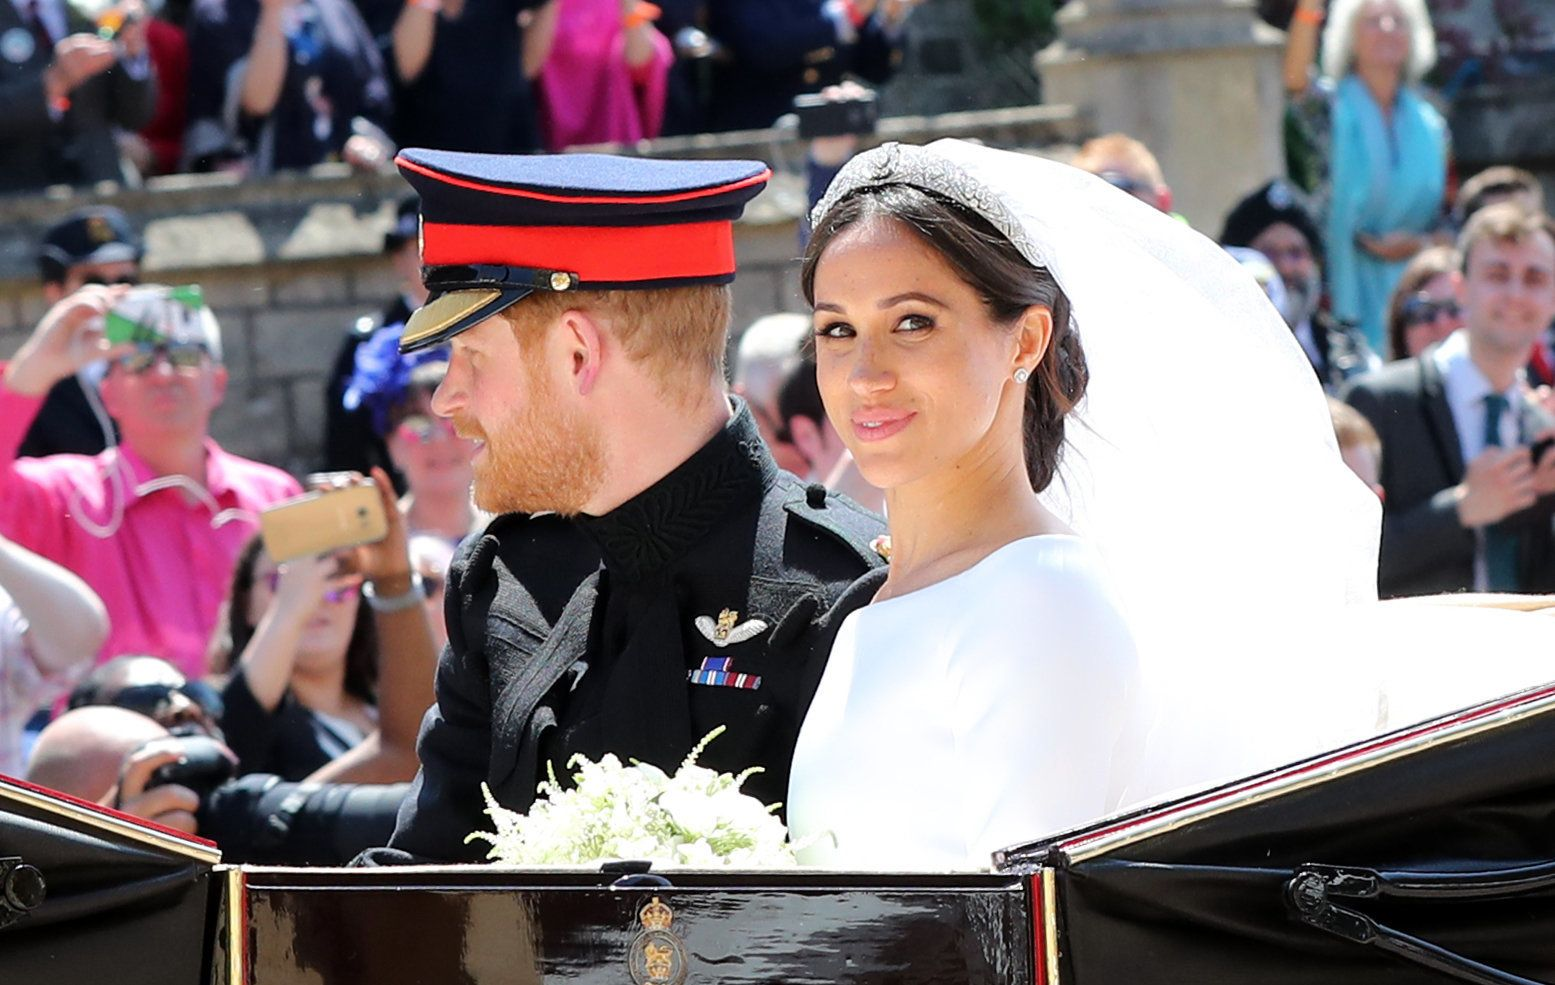 WINDSOR, ENGLAND - MAY 19:  Prince Harry, Duke of Sussex and The Duchess of Sussex leave Windsor Castle in the Ascot Landau carriage during a procession after getting married at St Georges Chapel on May 19, 2018 in Windsor, England.  (Photo by Gareth Fuller - WPA/Getty Images)